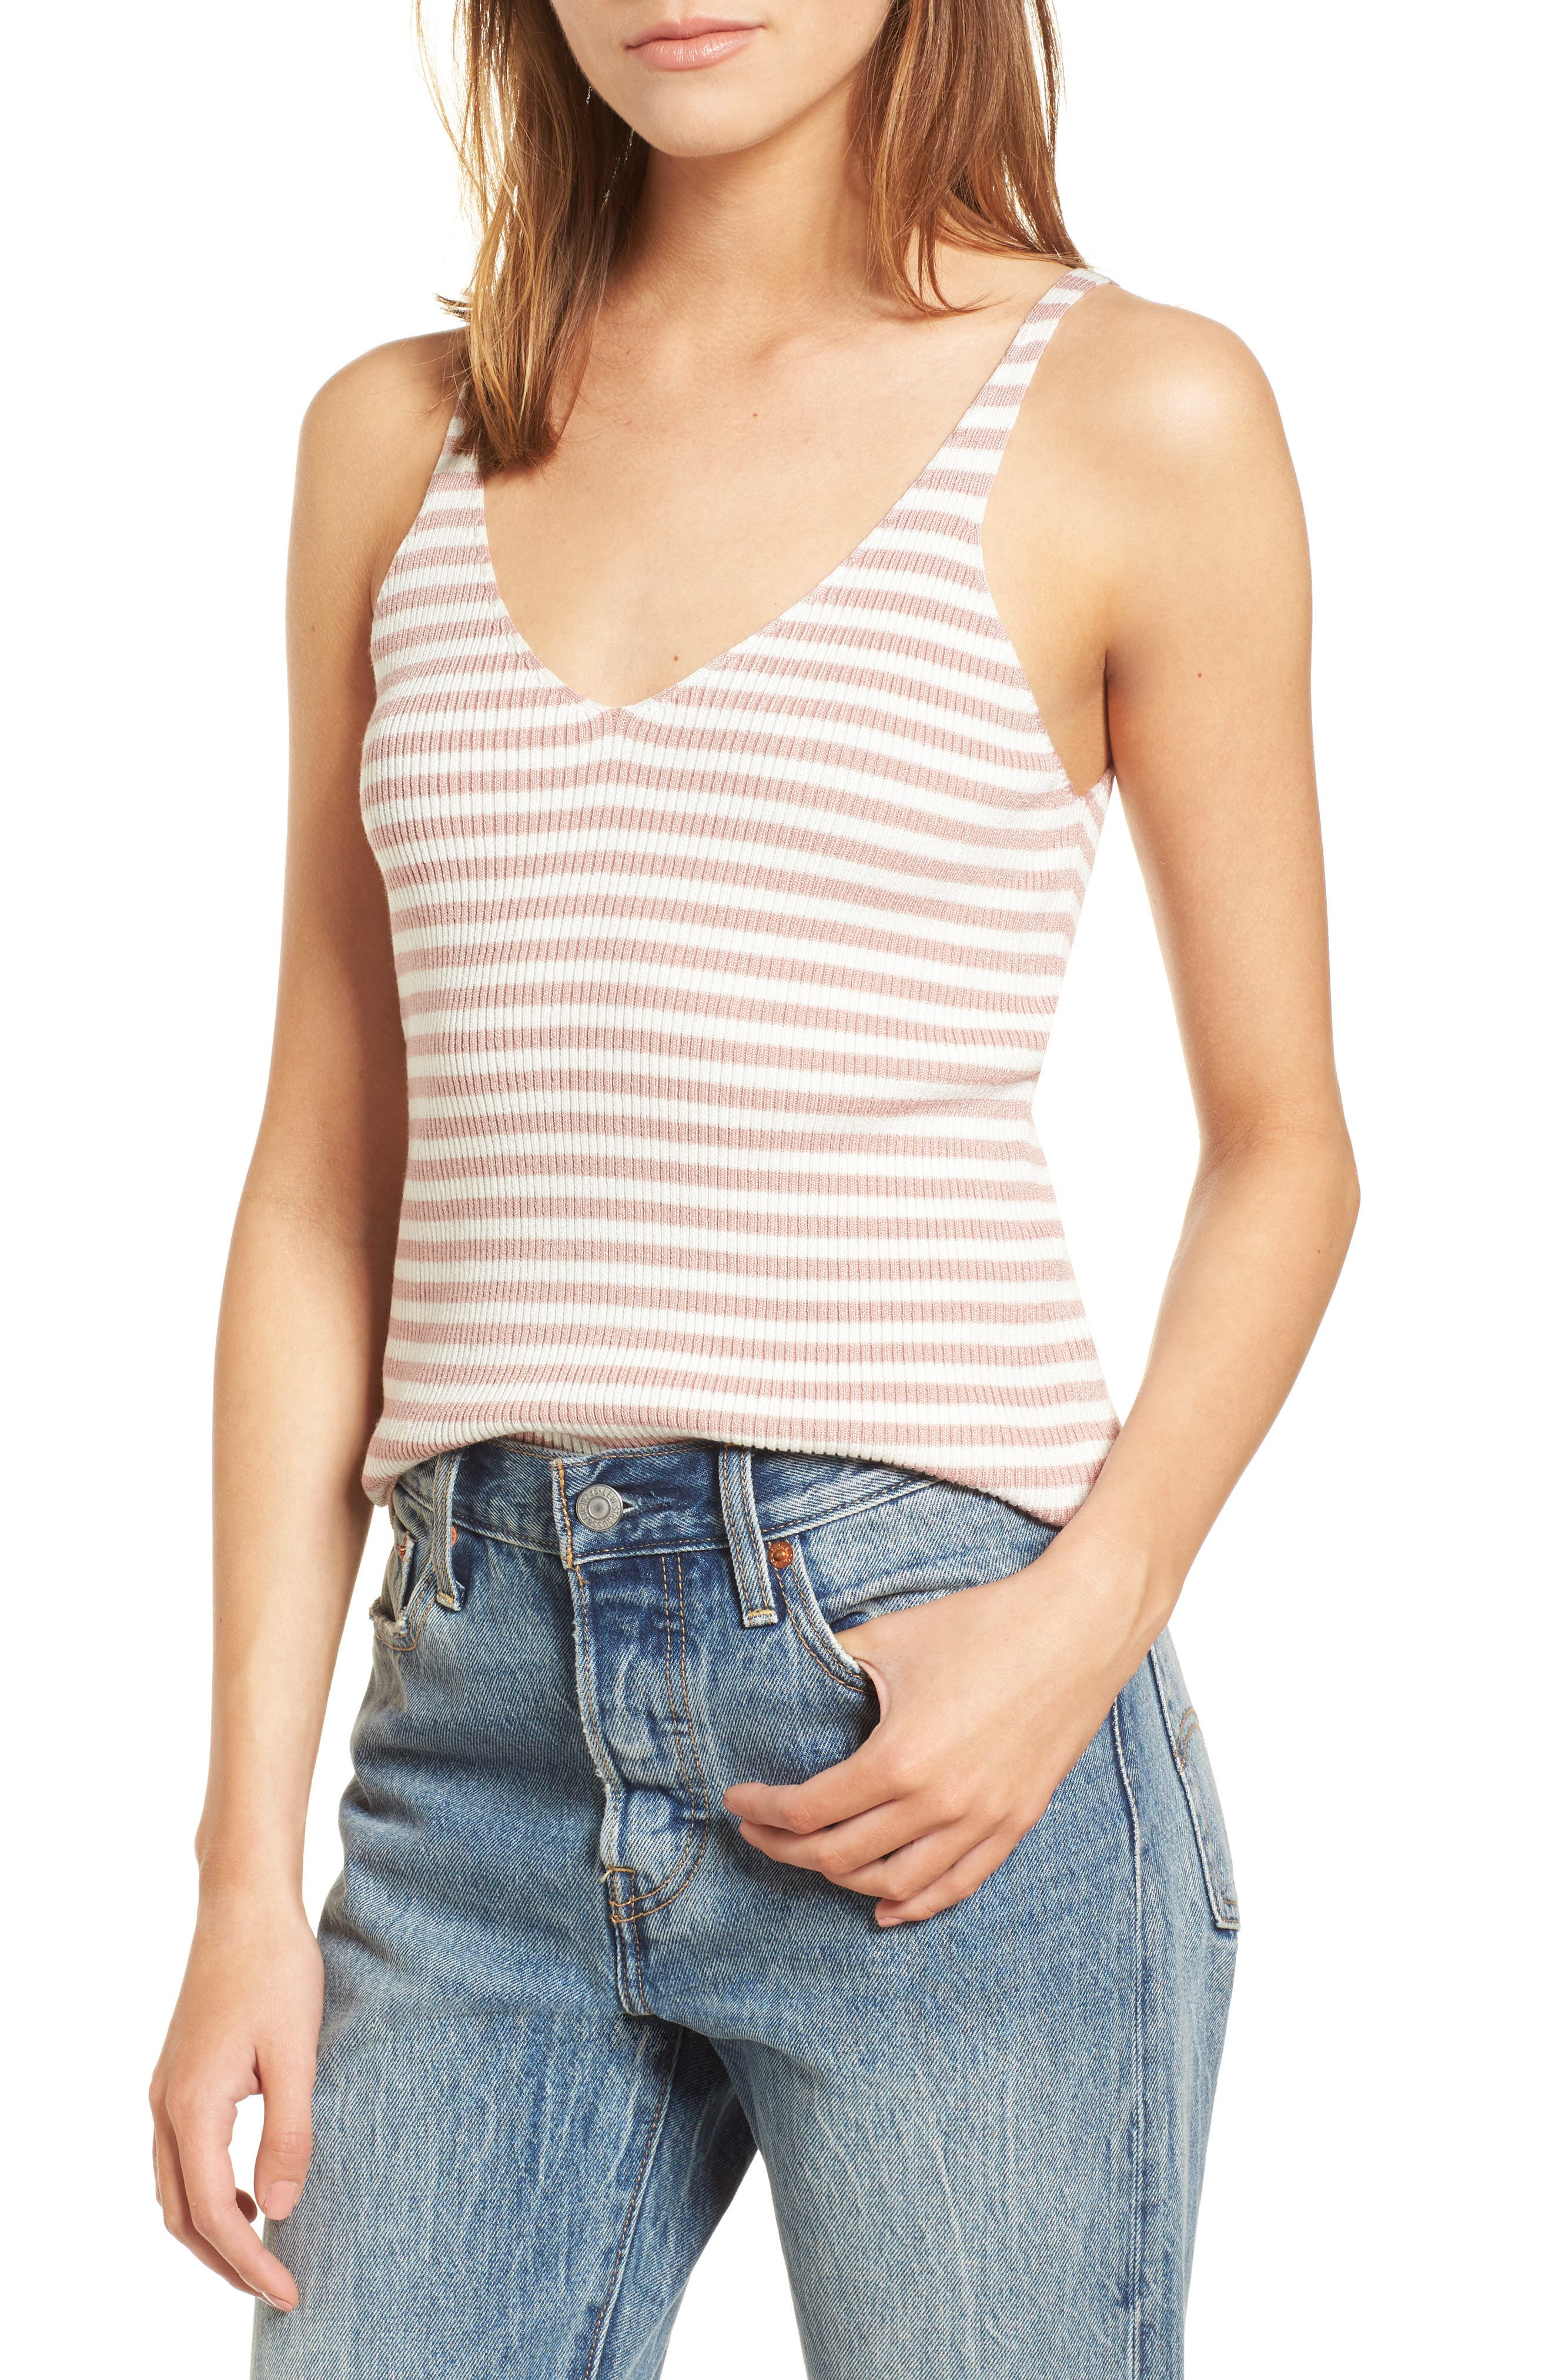 Cotton Emporium Stripe Sweater Camisole